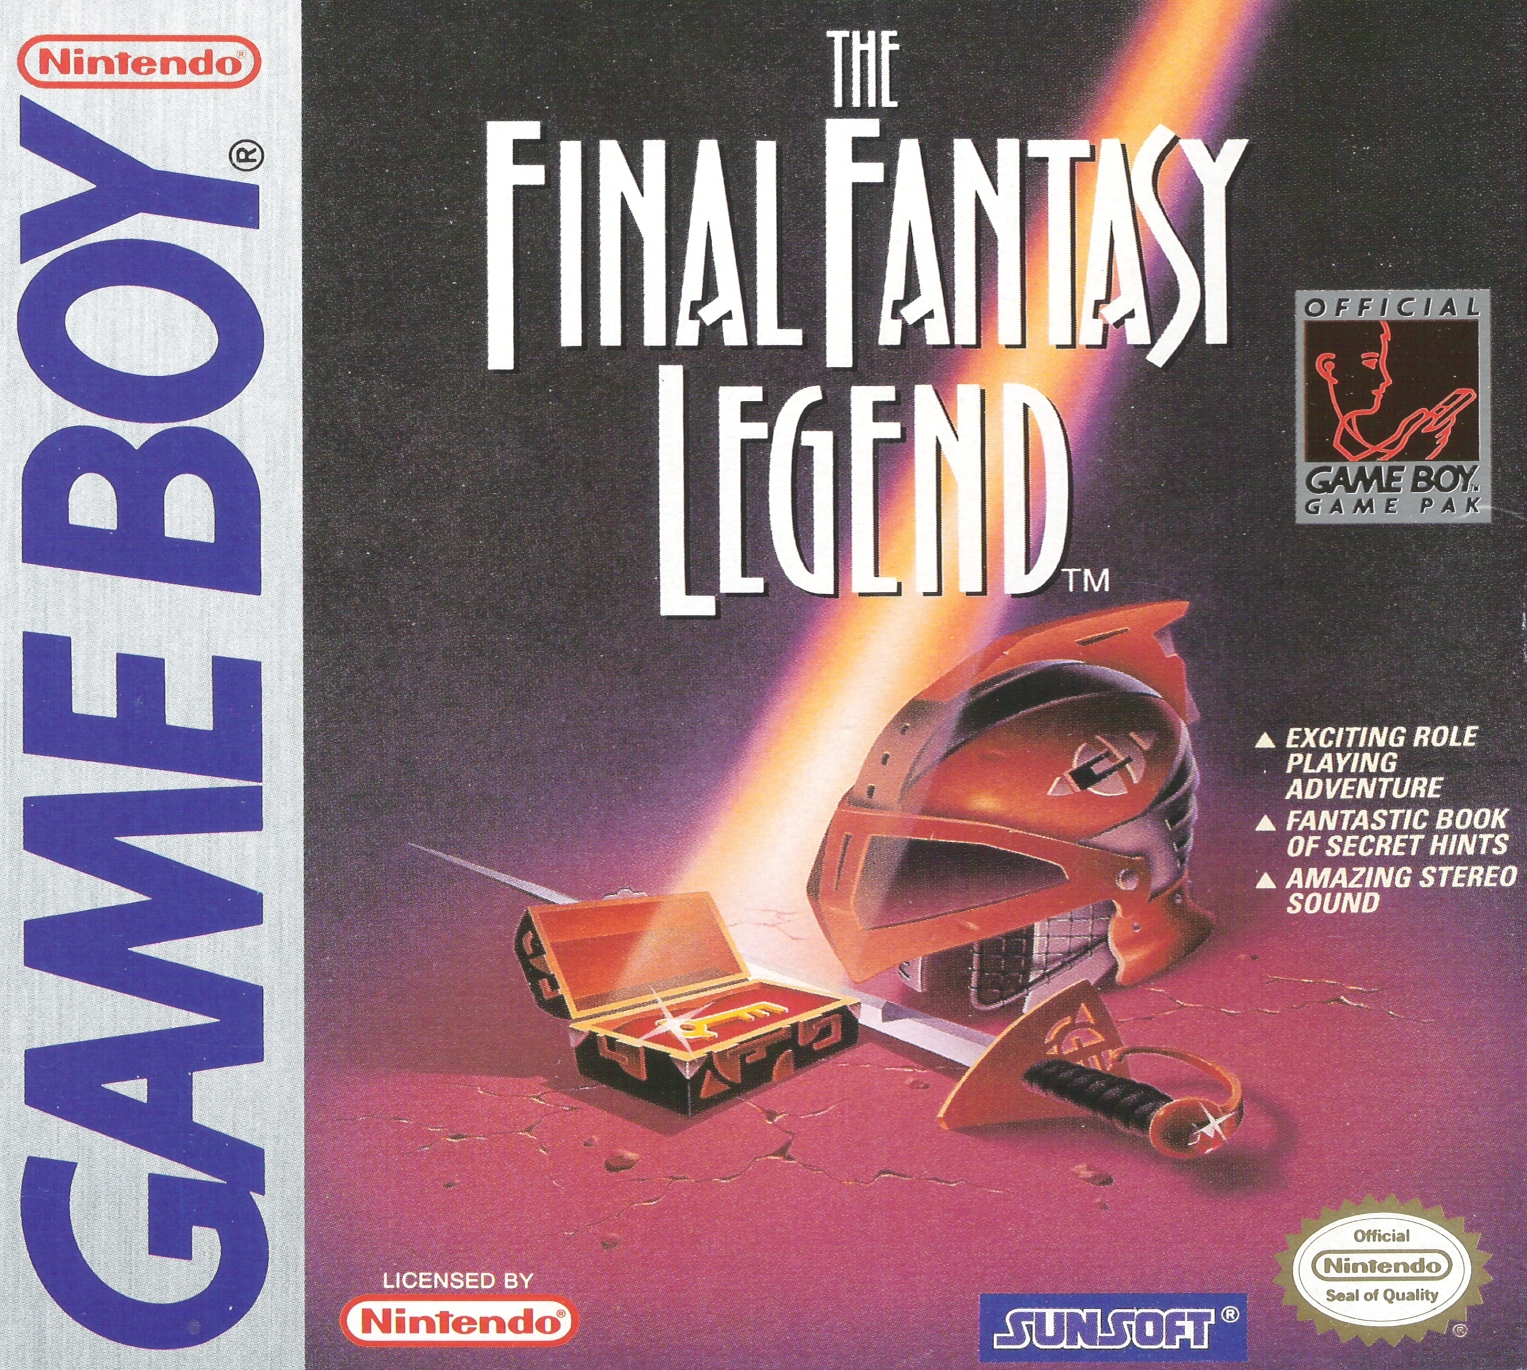 The North American box art used a unique *Final Fantasy* logo that was meant to be used for the series but was shortly afterwards abandoned.